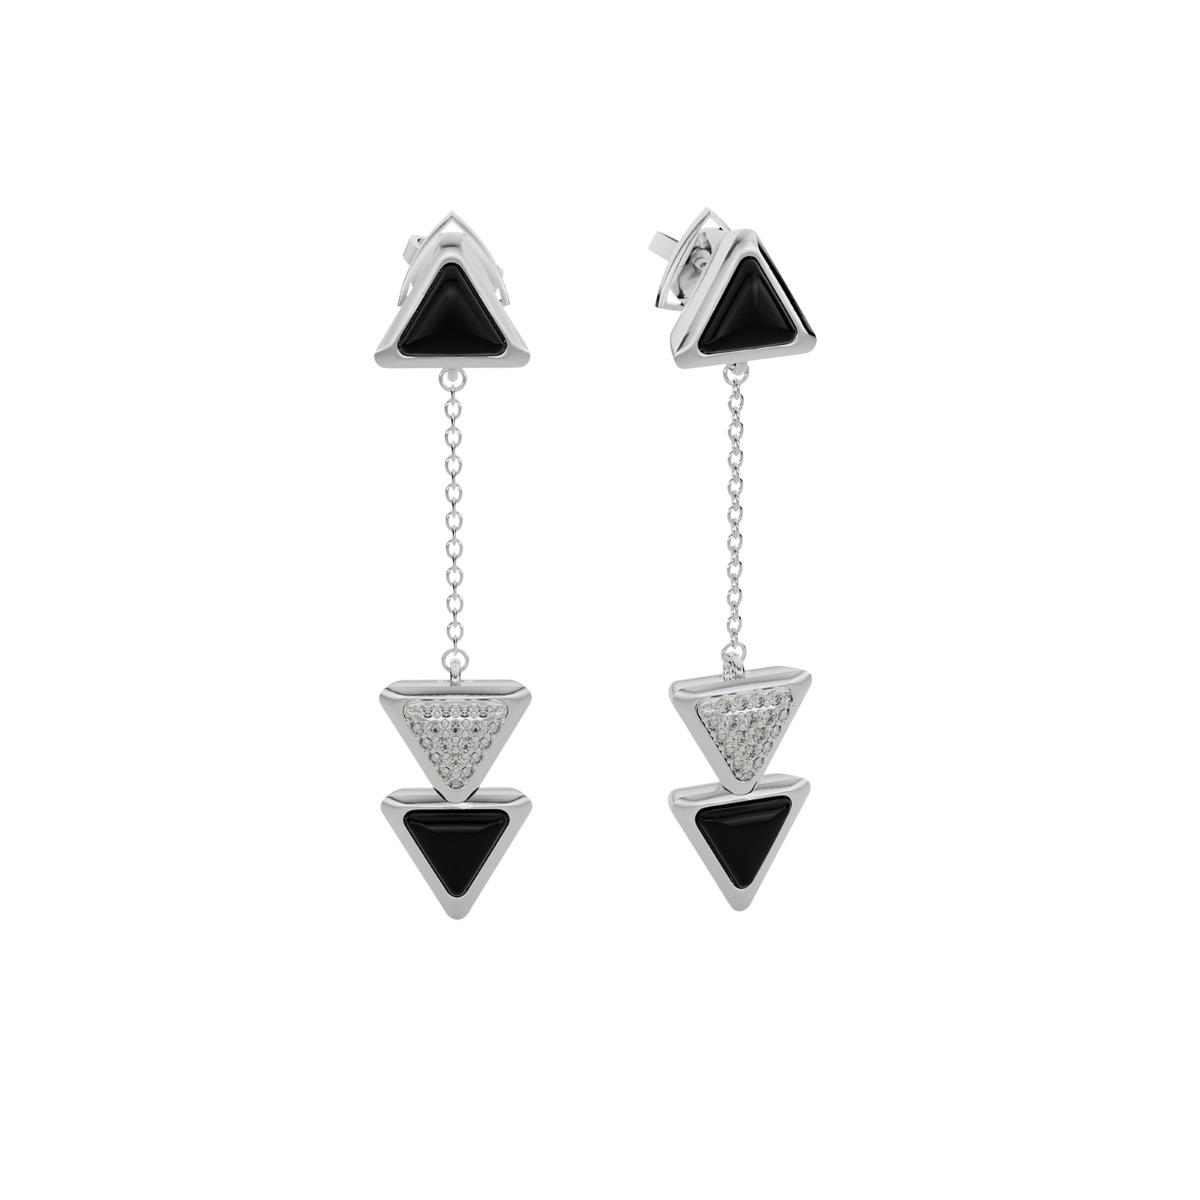 Earrings Dove Vai Rewind Exquisite White Gold Onix and Diamonds